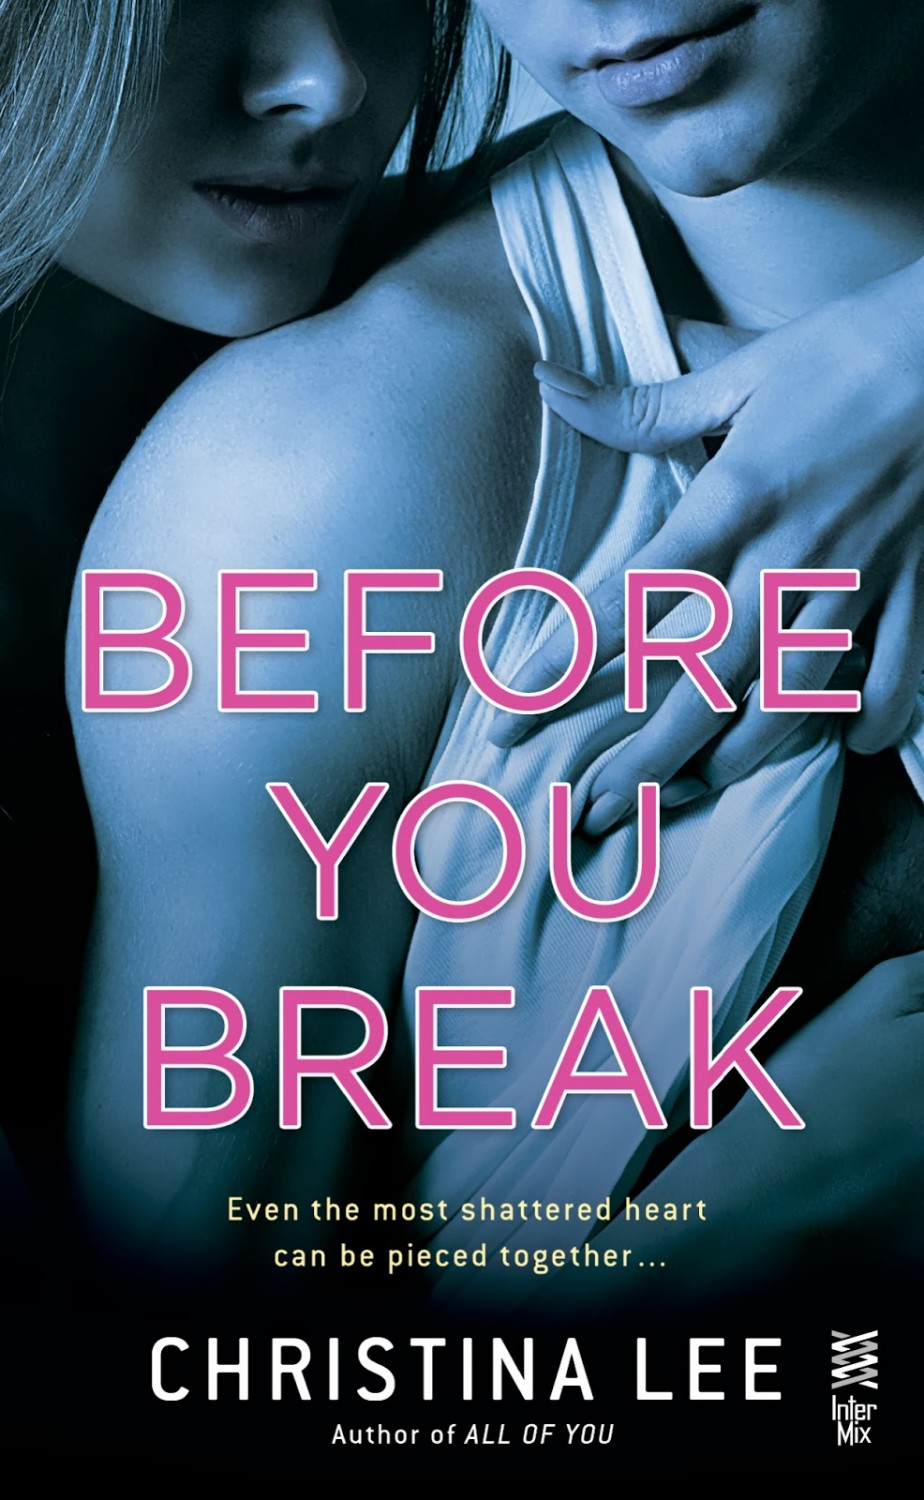 0a52c-beforeyoubreak_officialcover